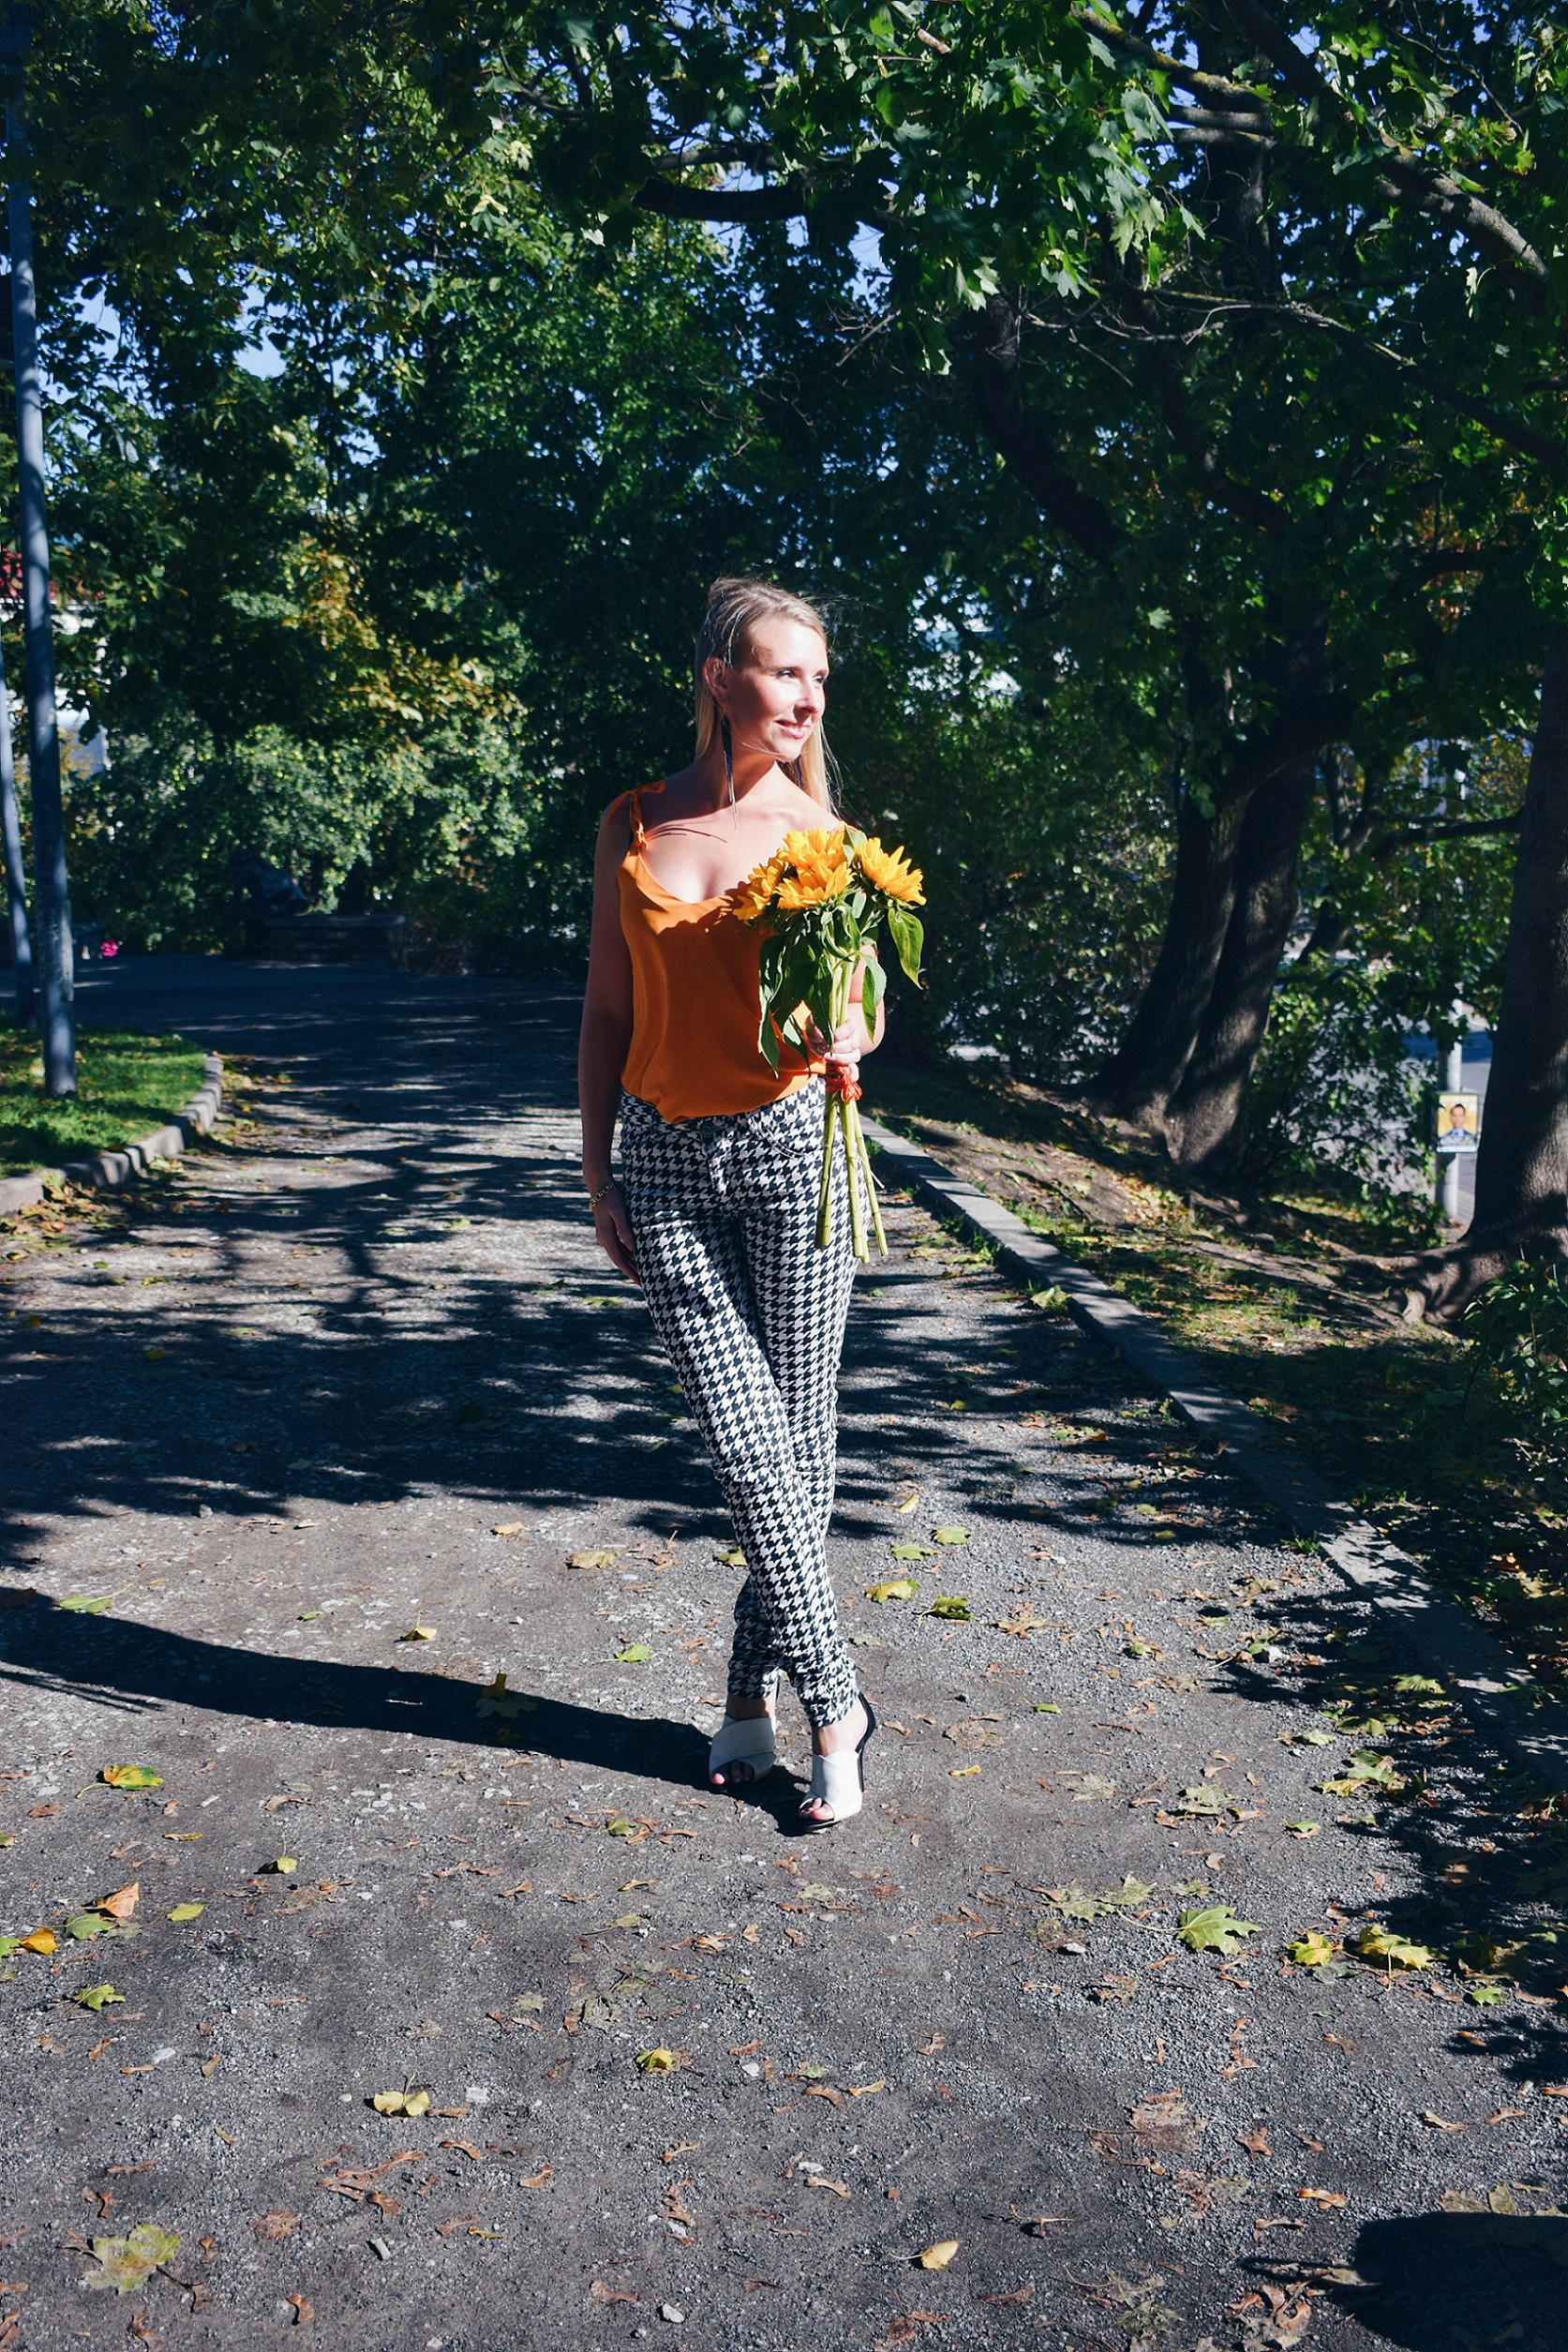 Outlandish blog launch new layout fashion Autumn outfit inspiration orange sunflowers